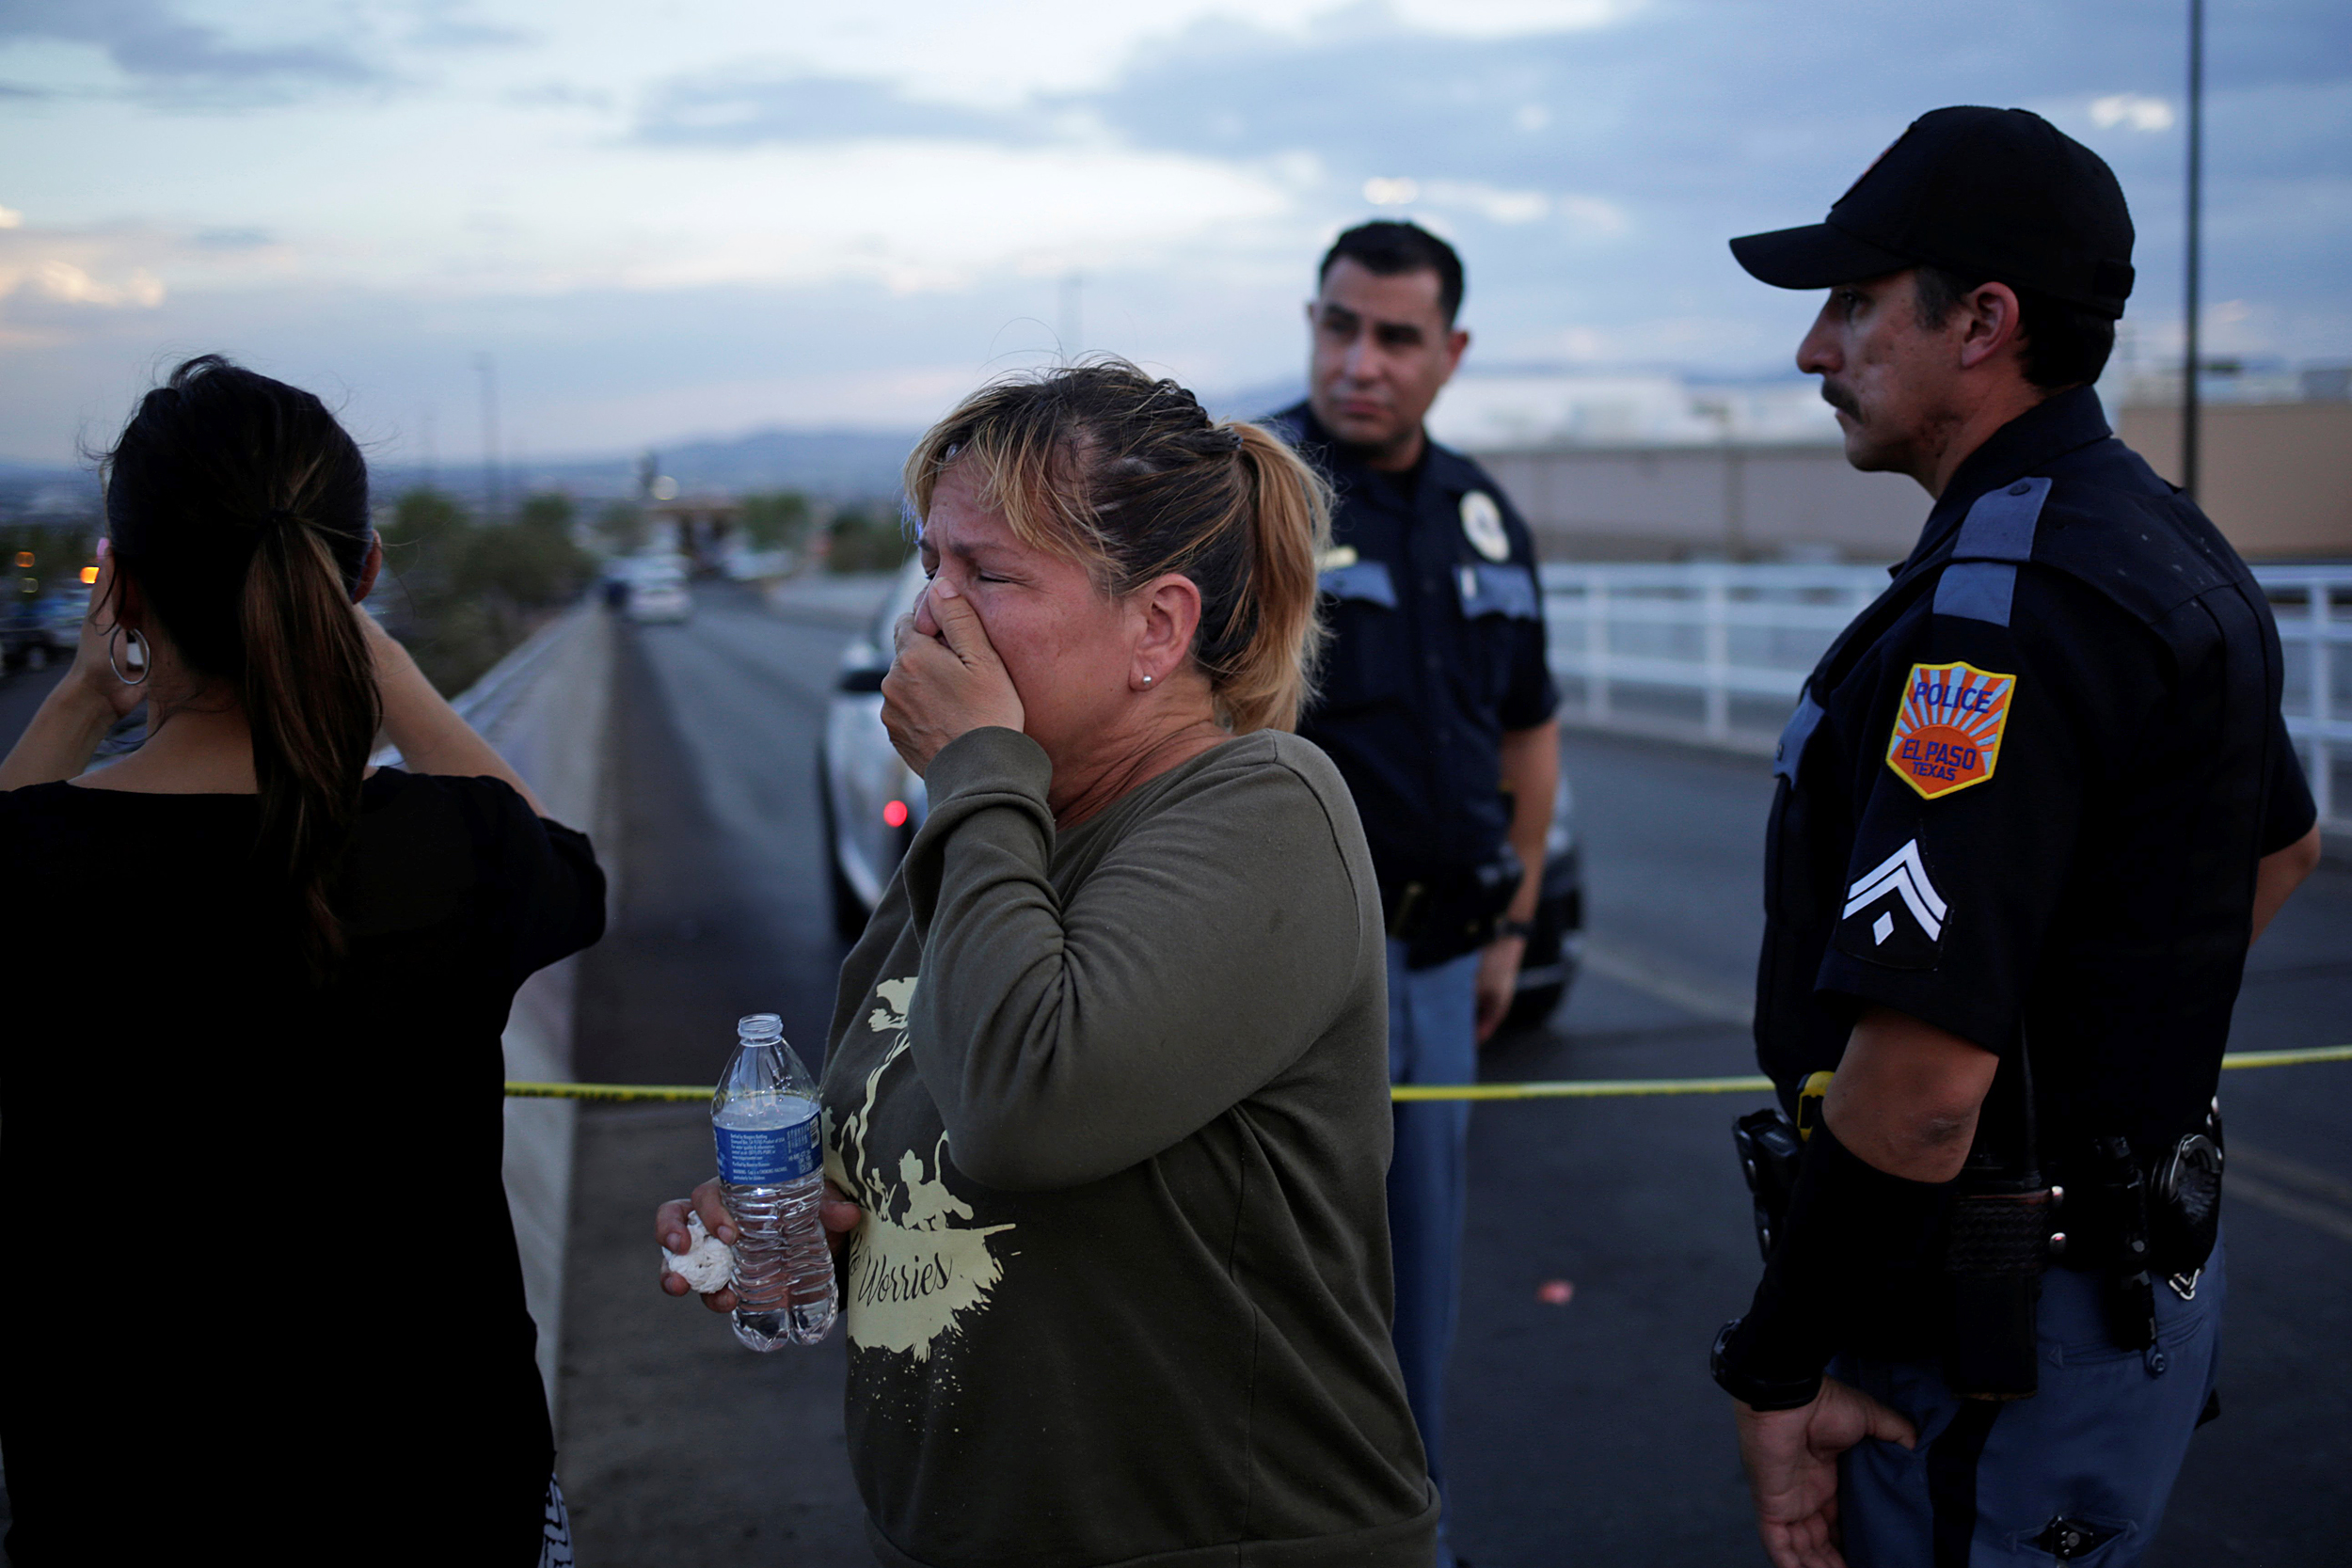 Onlookers stand outside an El Paso Walmart, where a gunman killed 22 shoppers in August ( Image )